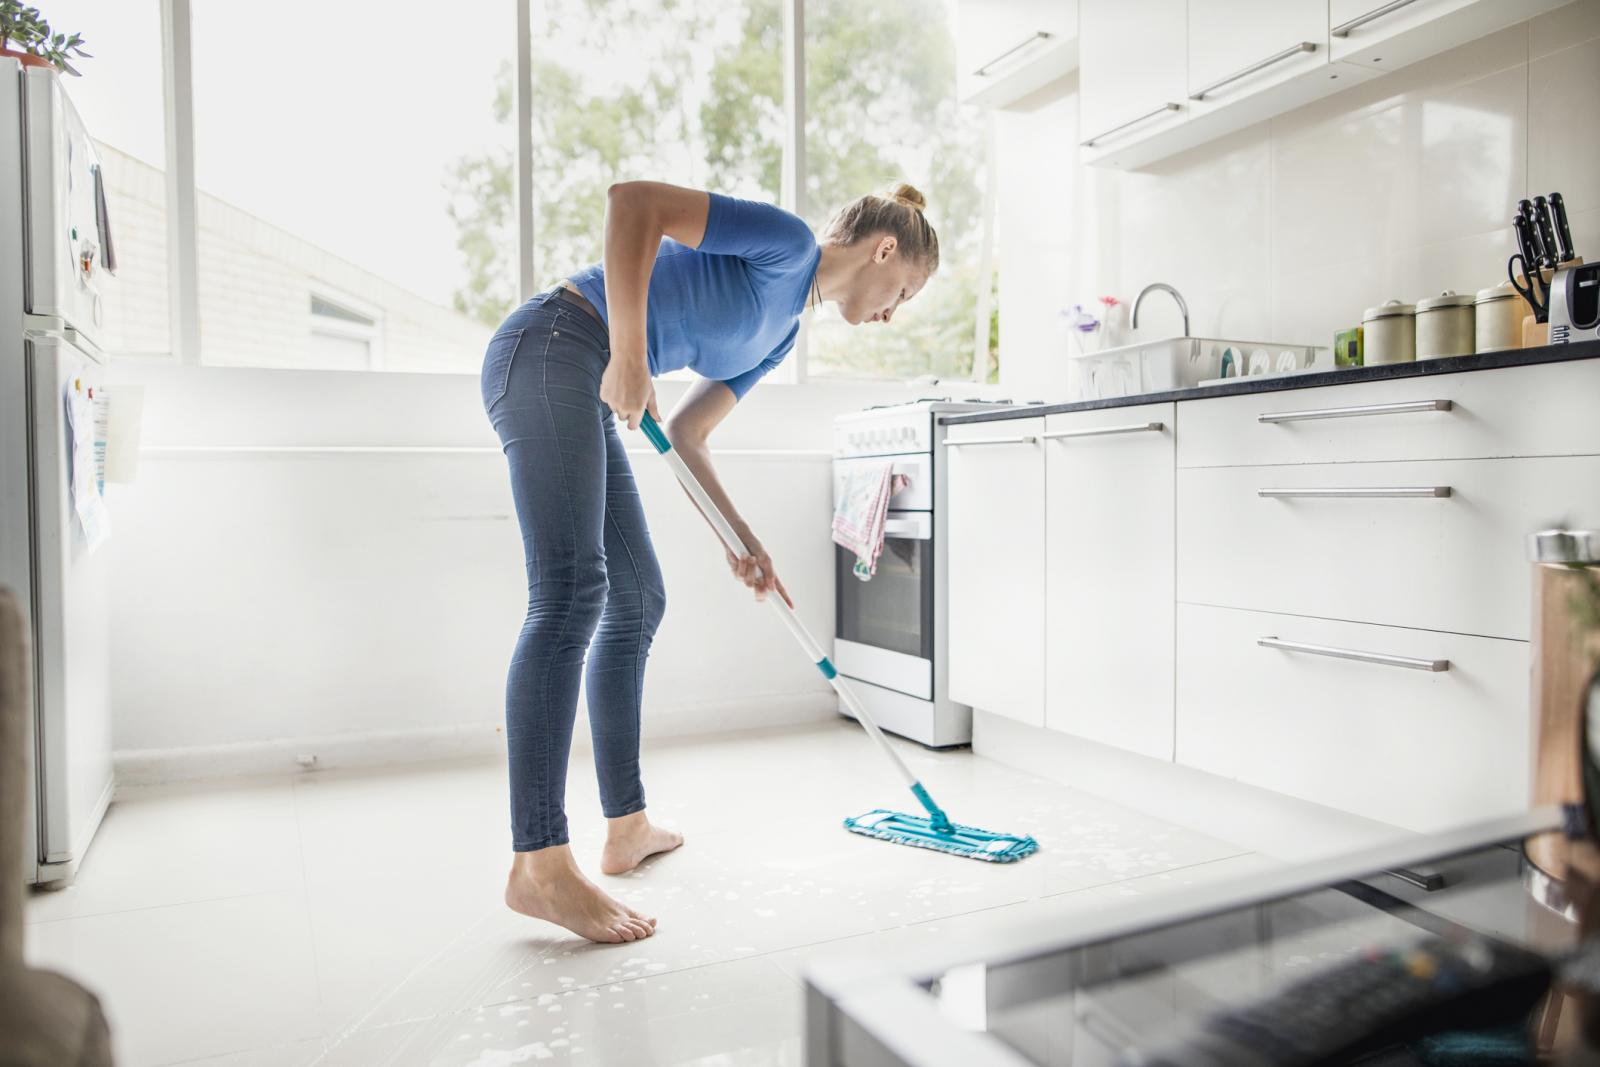 How to Clean Ceramic Tile Floors | LoveToKnow